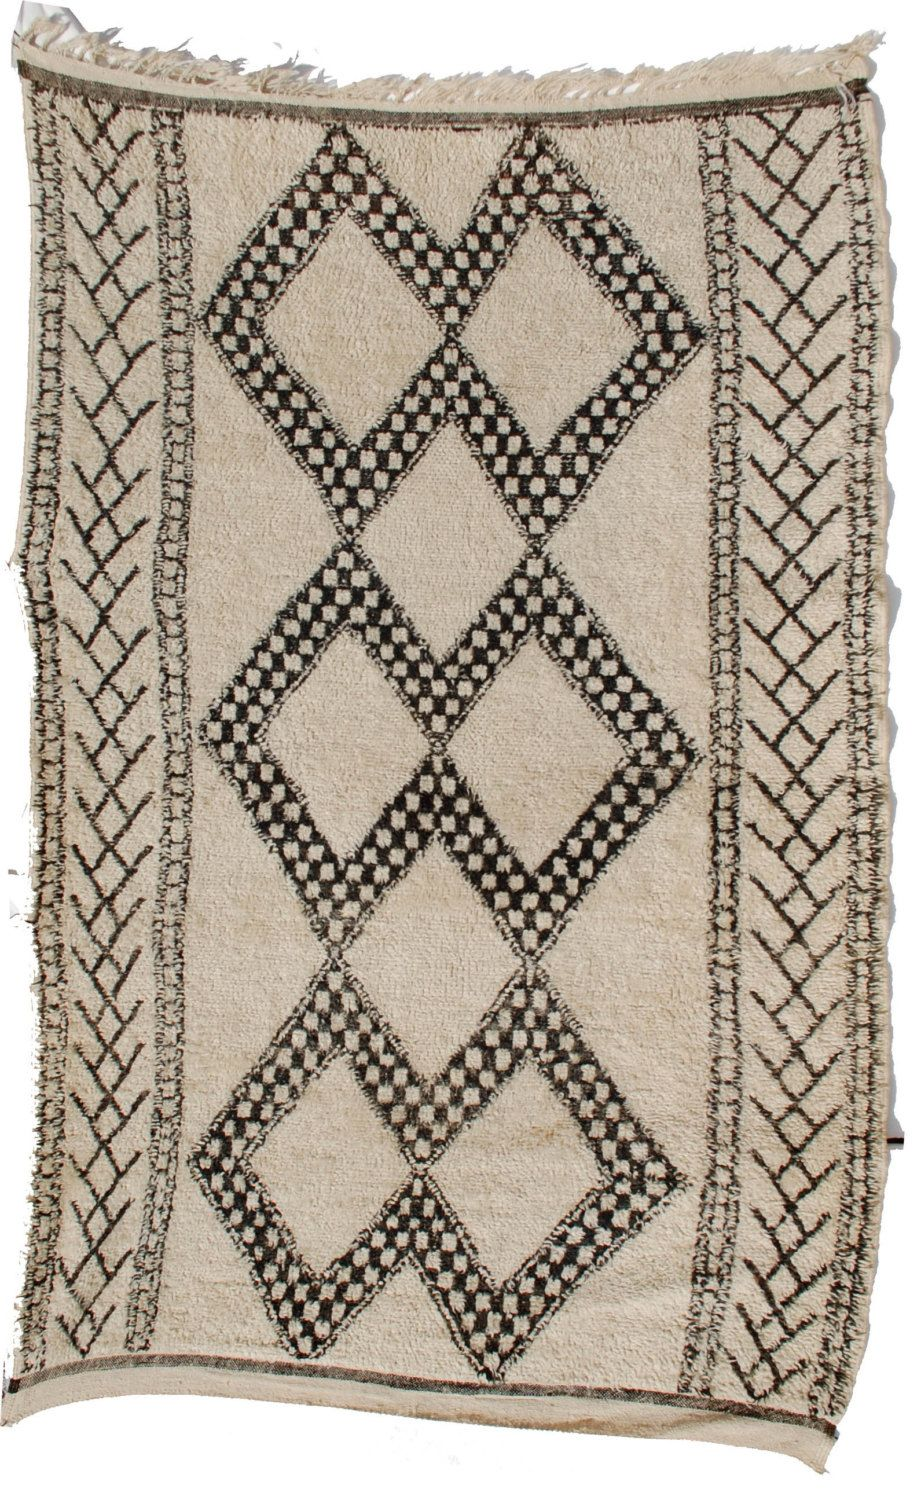 Ikea Ryssby Teppich Semi Antique Beni Ourain Moroccan Rug Wool Vintage Carpet By